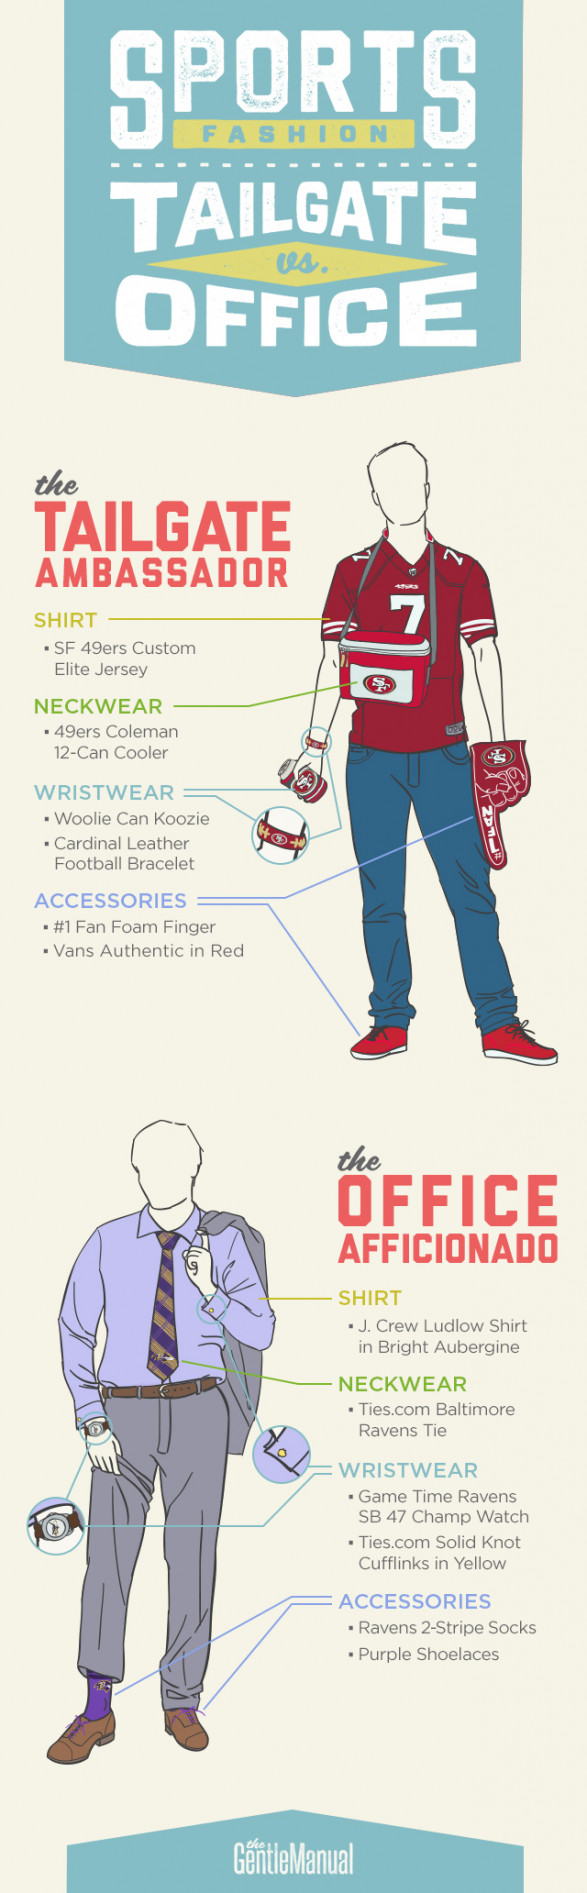 NFL SPORTS APPAREL FASHION: TAILGATE VS. OFFICE